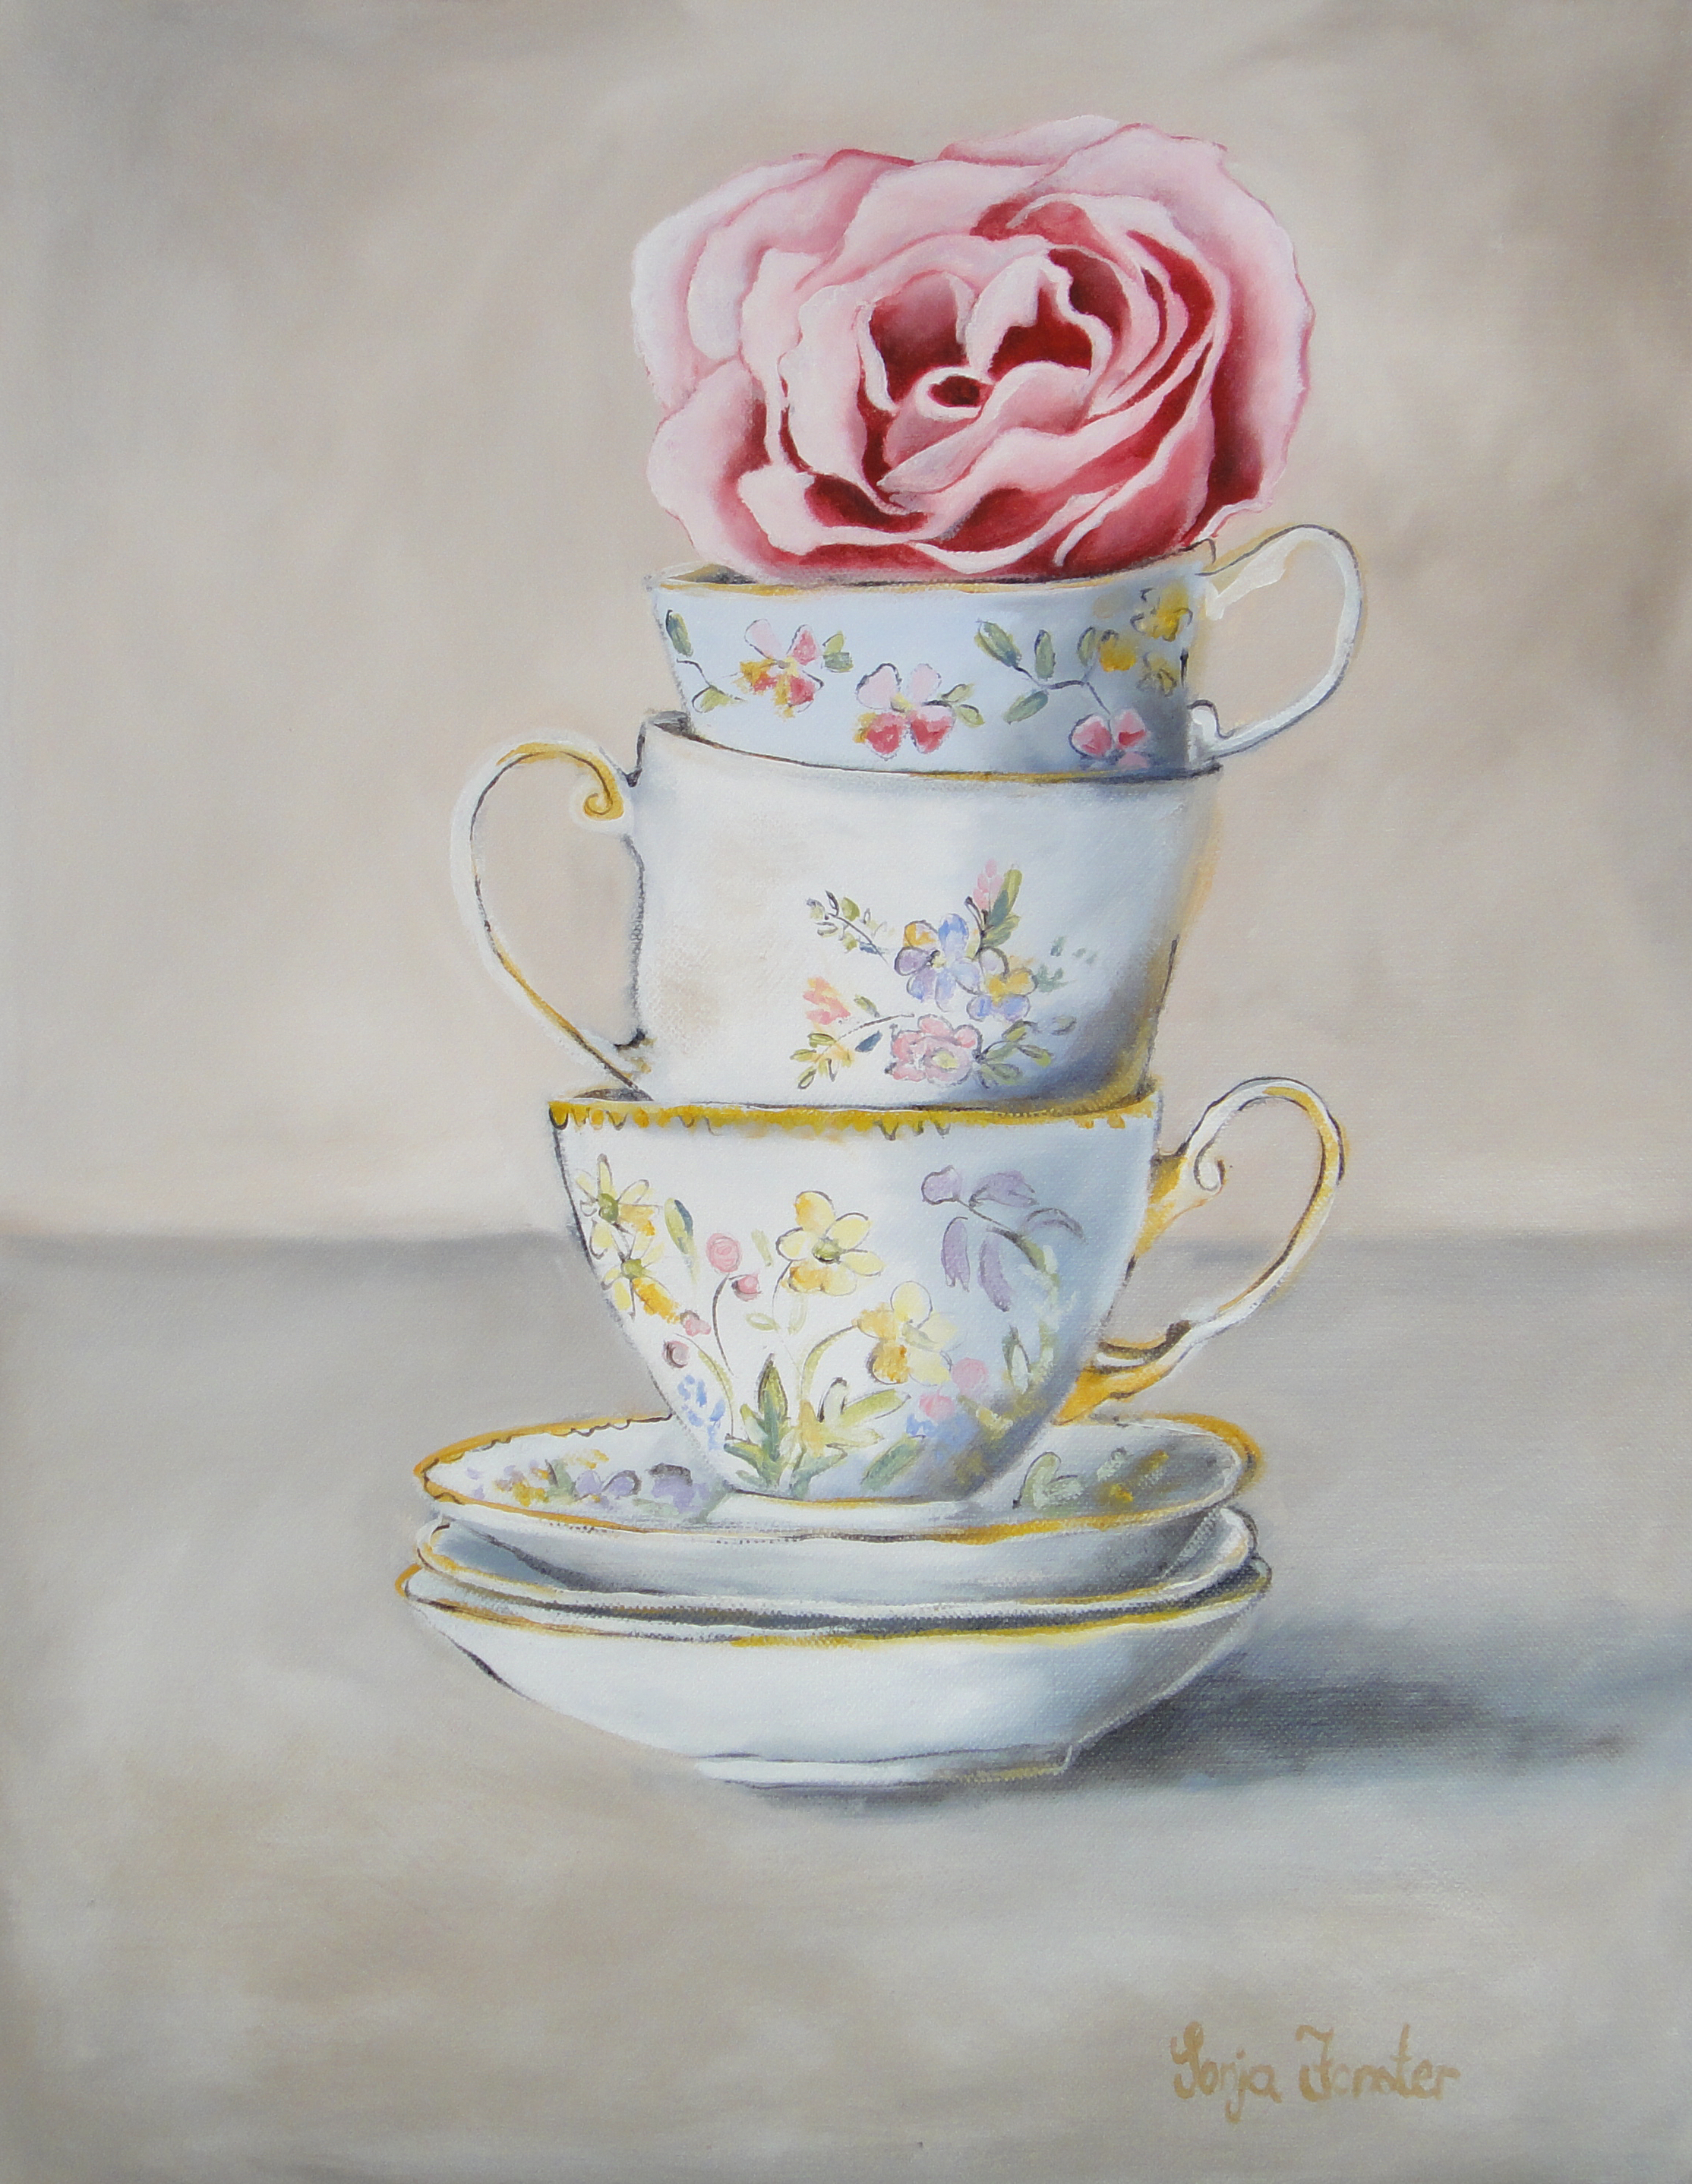 Sonja Forster Art - Stacked Tea Cups.jpg